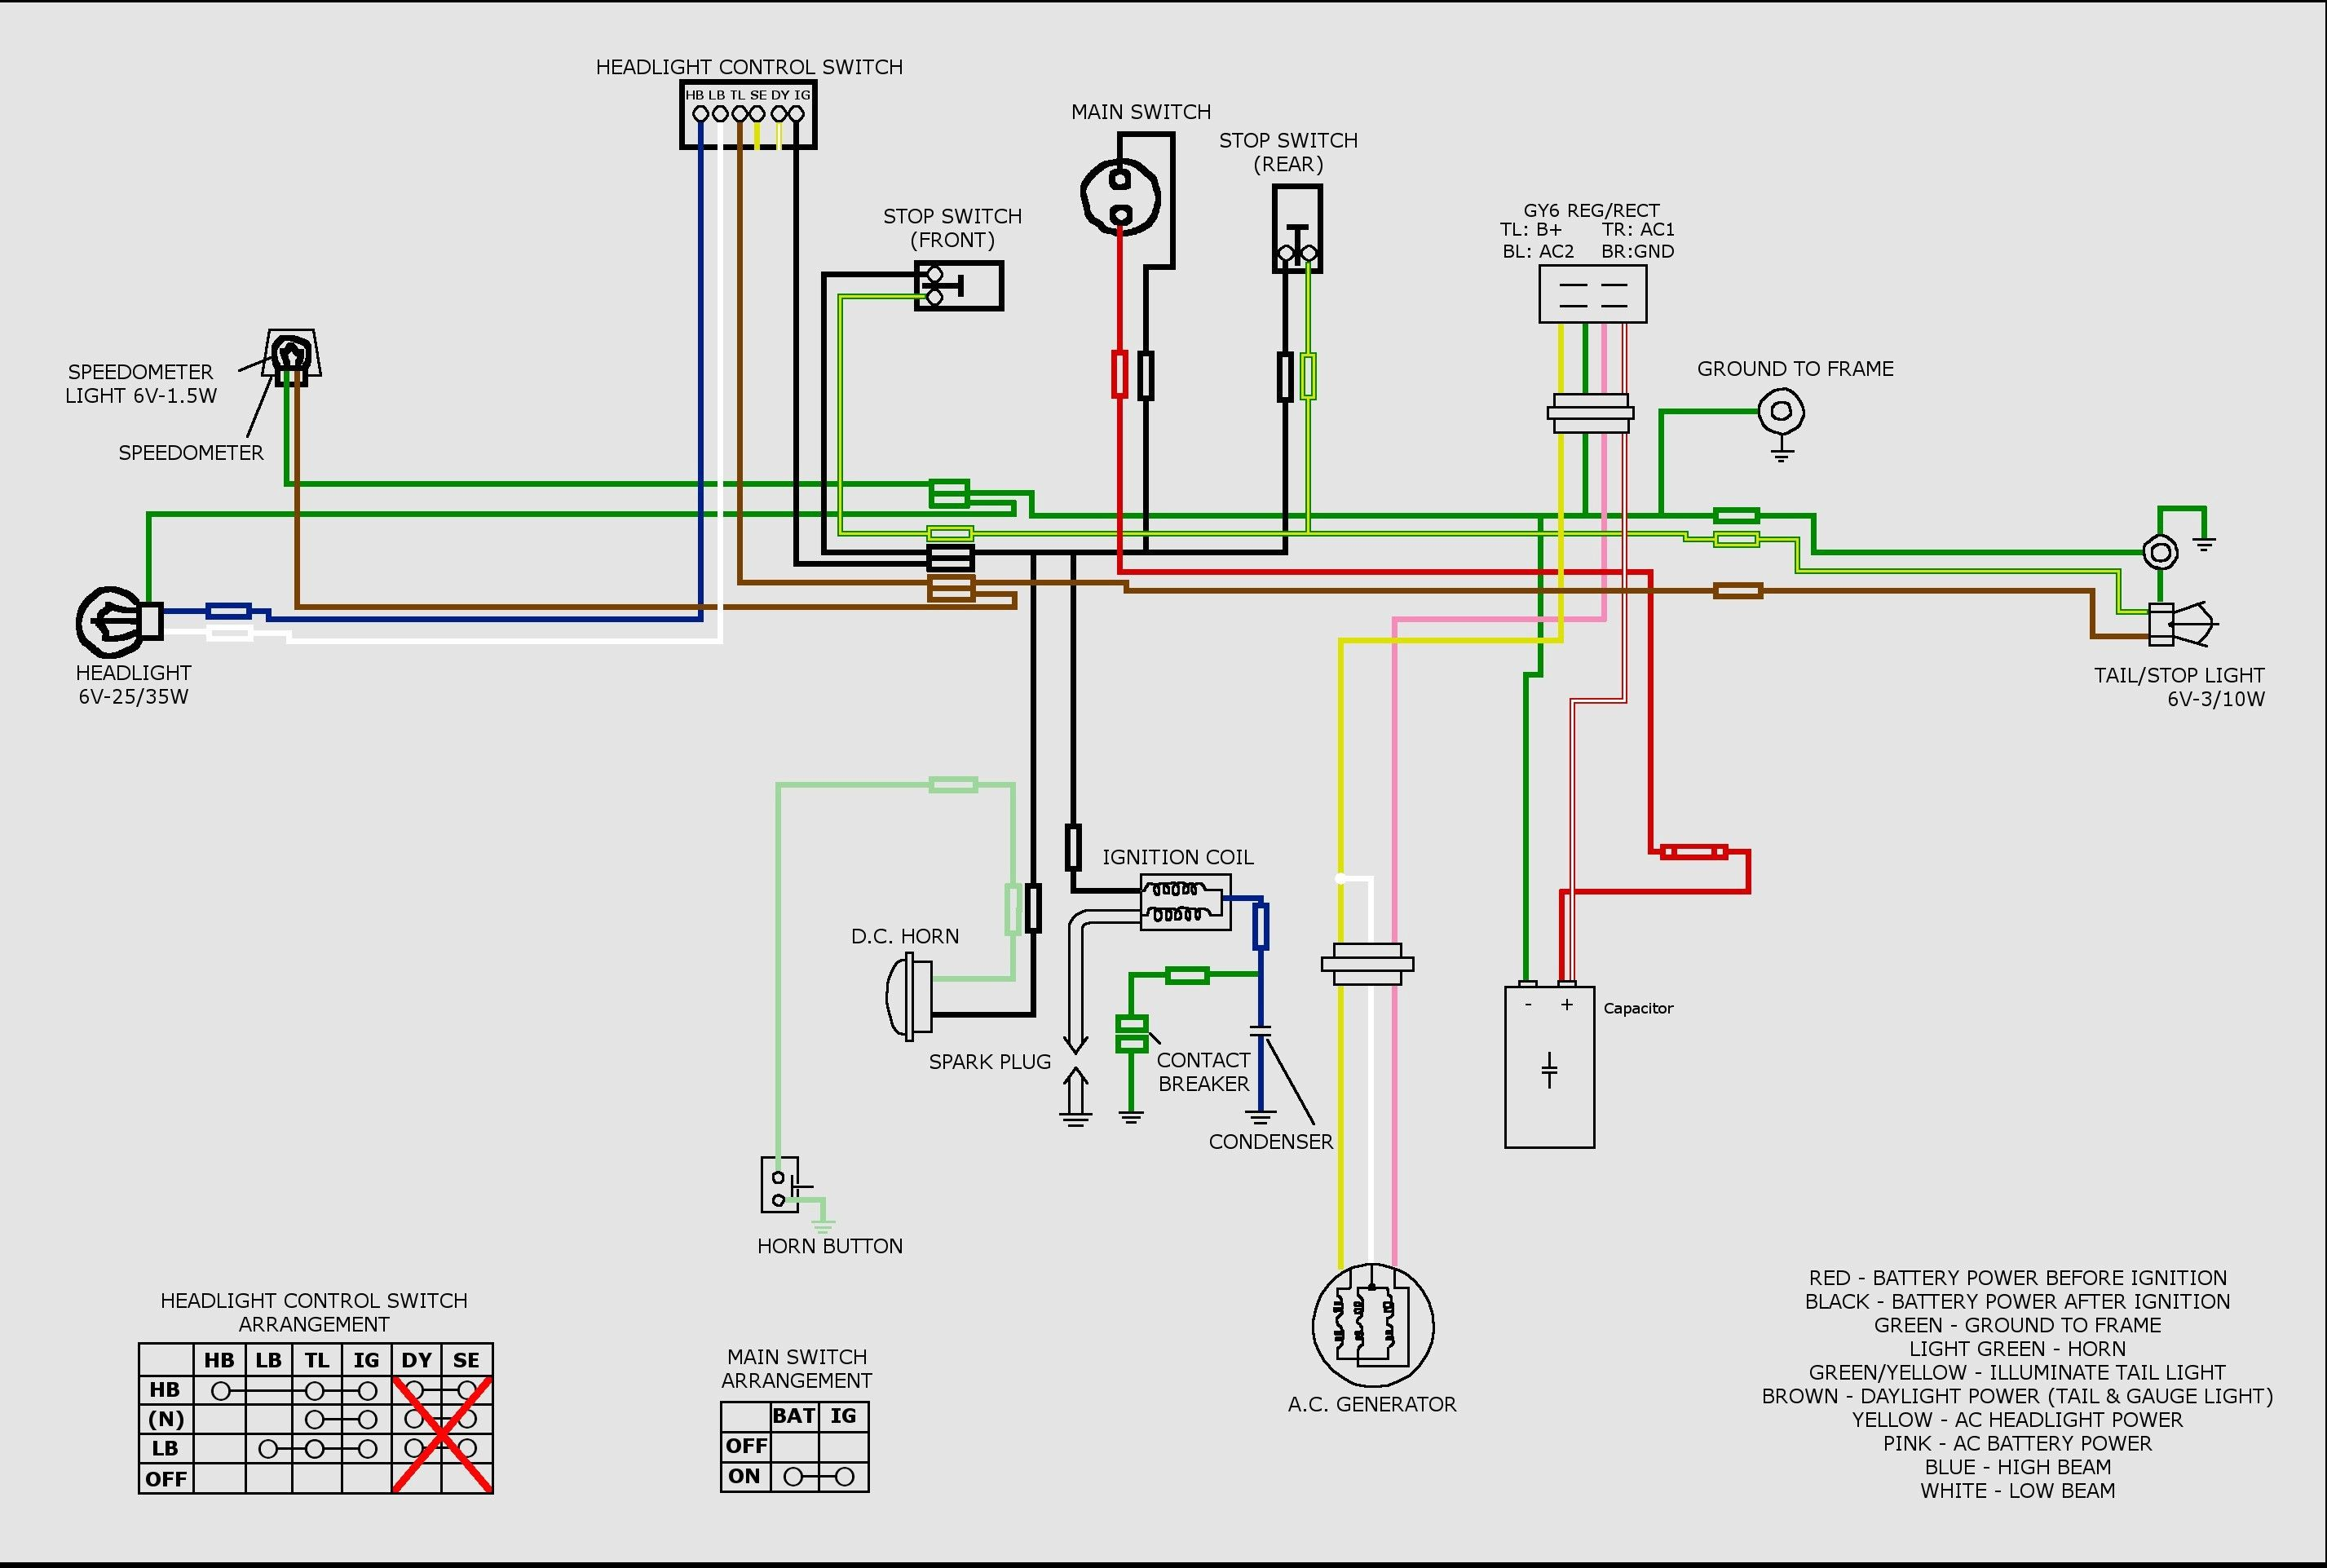 moped kick starter schematic everything wiring diagram moped kick starter schematic [ 2854 x 1923 Pixel ]